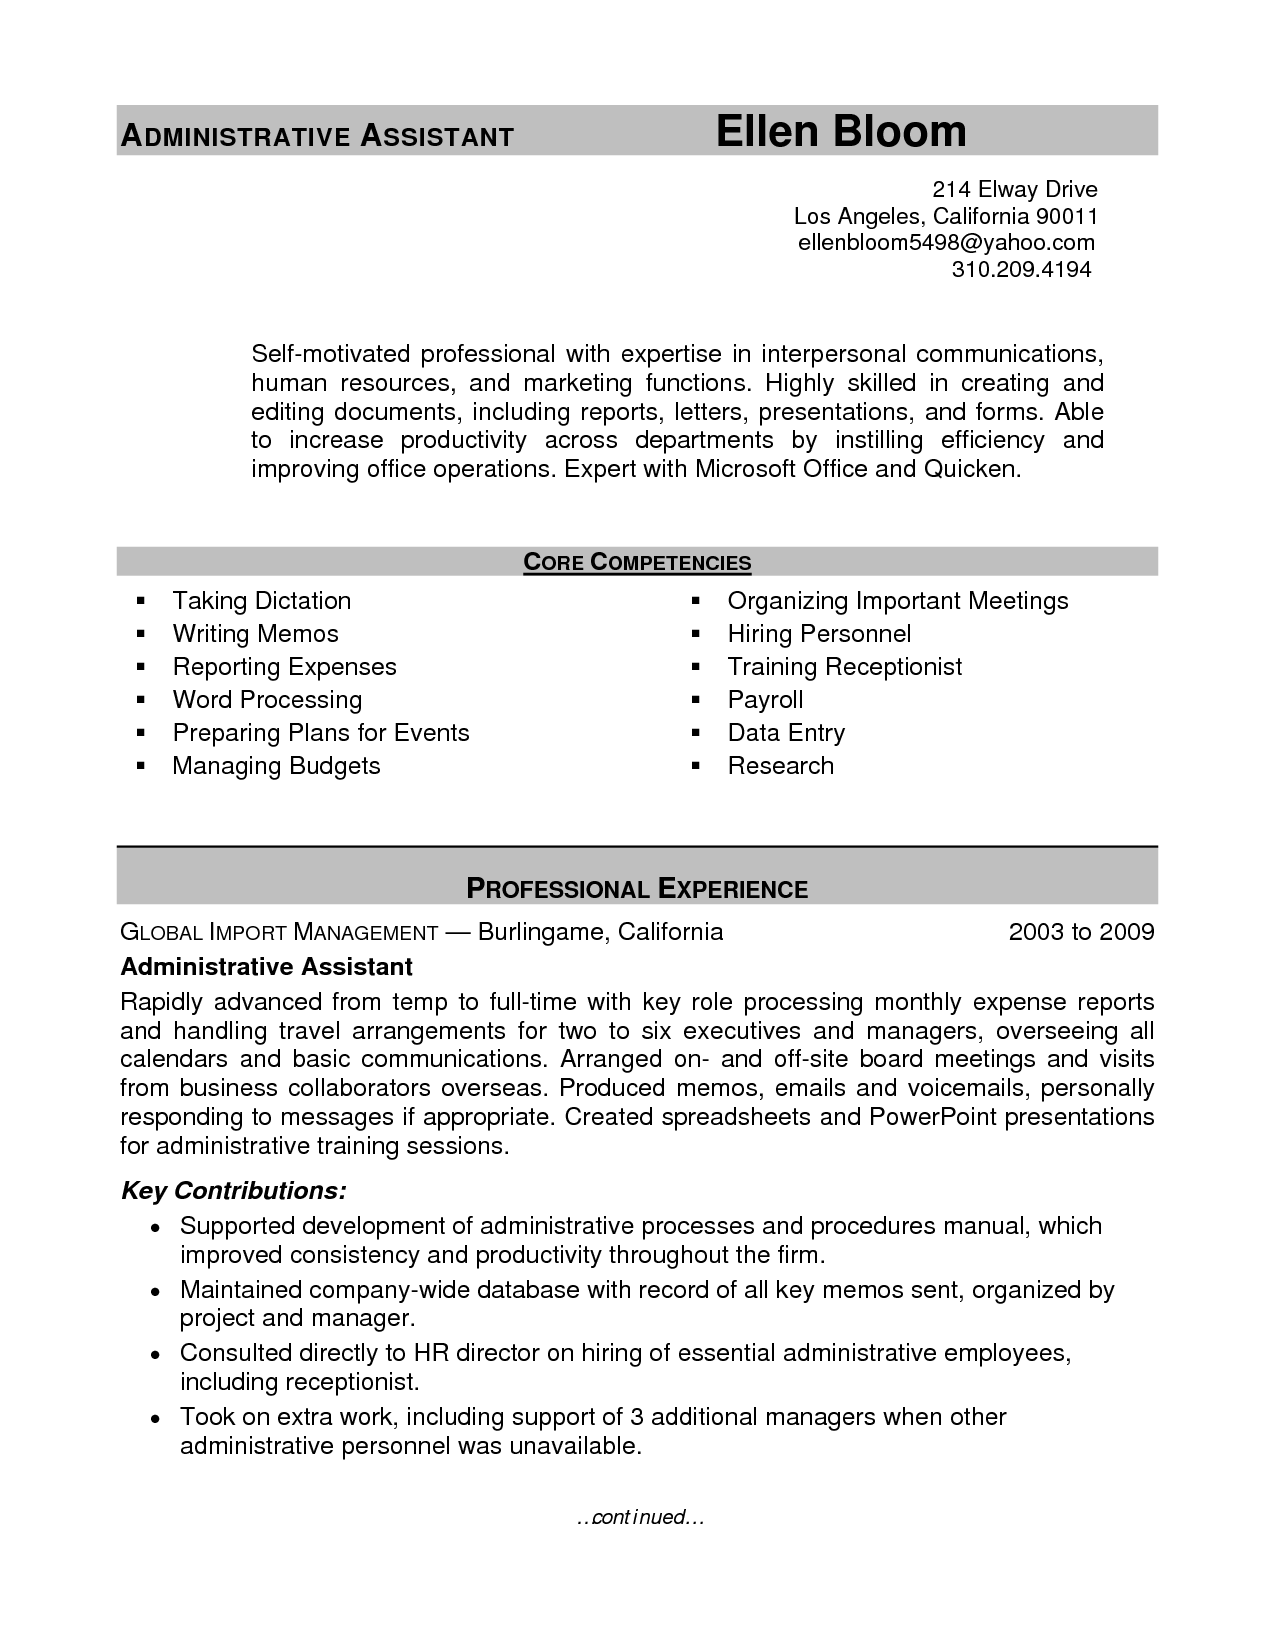 medical office assistant resume samples - Medical Administrative Assistant Resume